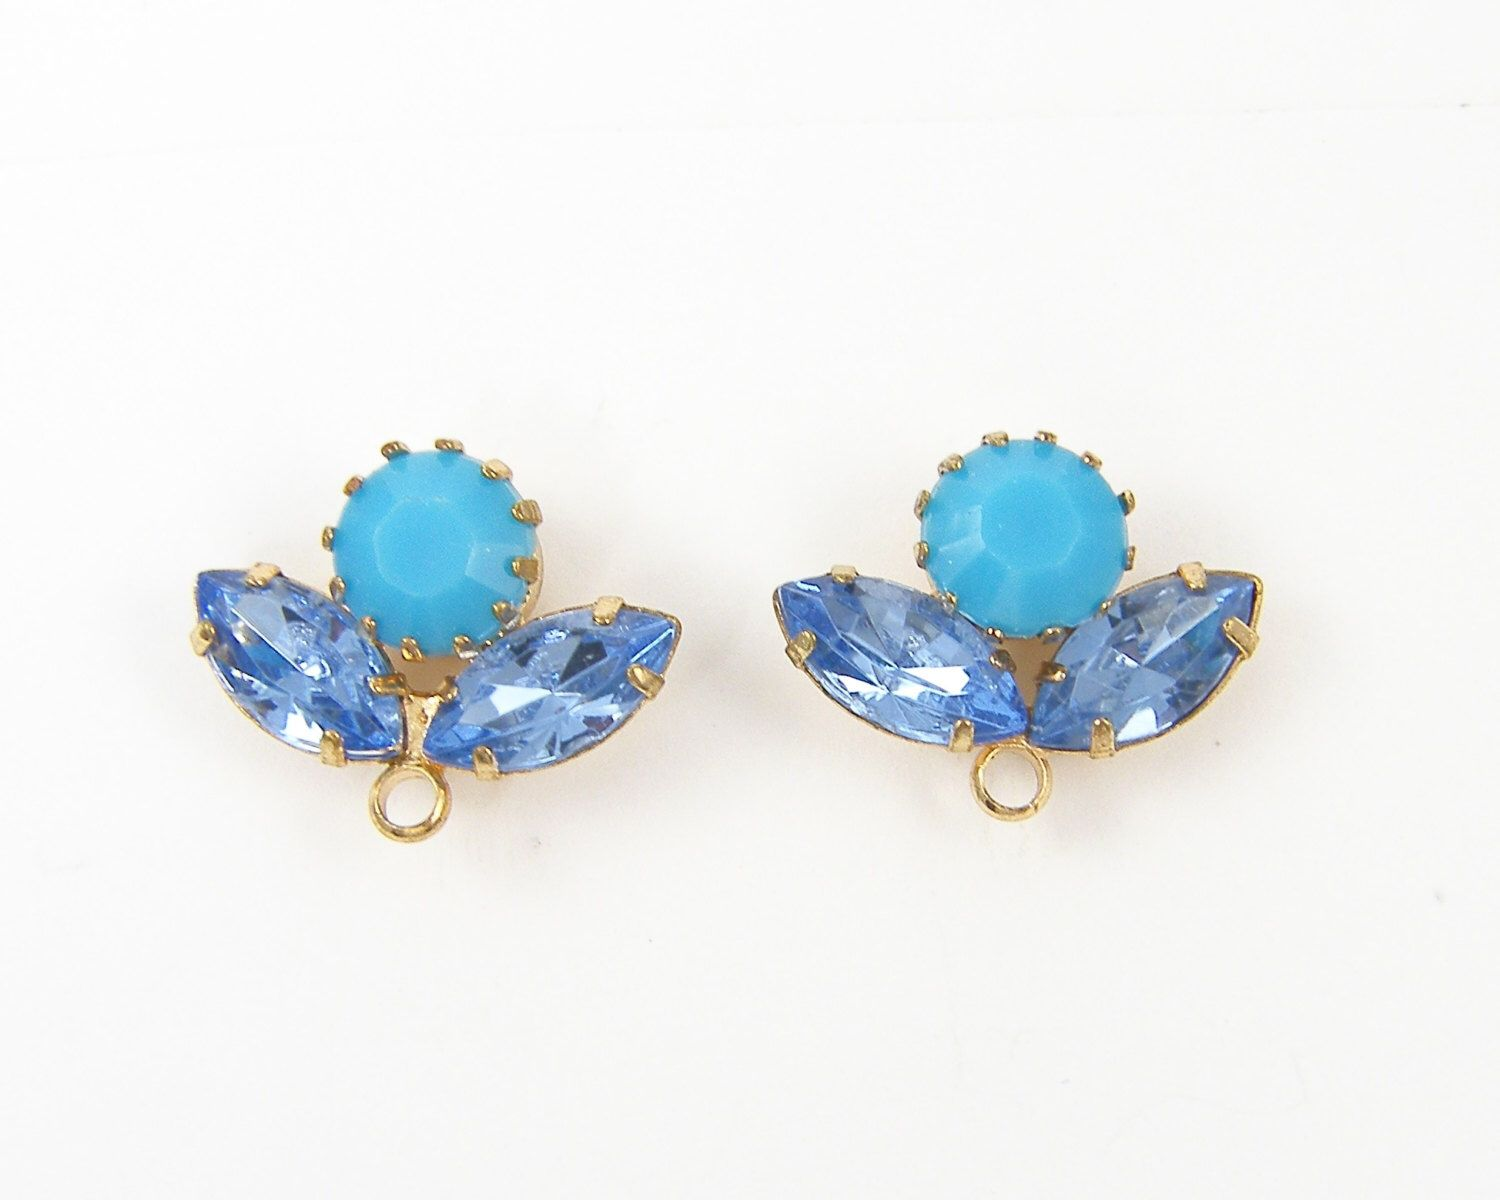 Turquoise Blue Gold Earring Posts Rhinestone for DIY Bridal Special Occasion Jewel Earring Posts  Findings by TheBeadDreamer on Etsy https://www.etsy.com/listing/174325661/turquoise-blue-gold-earring-posts